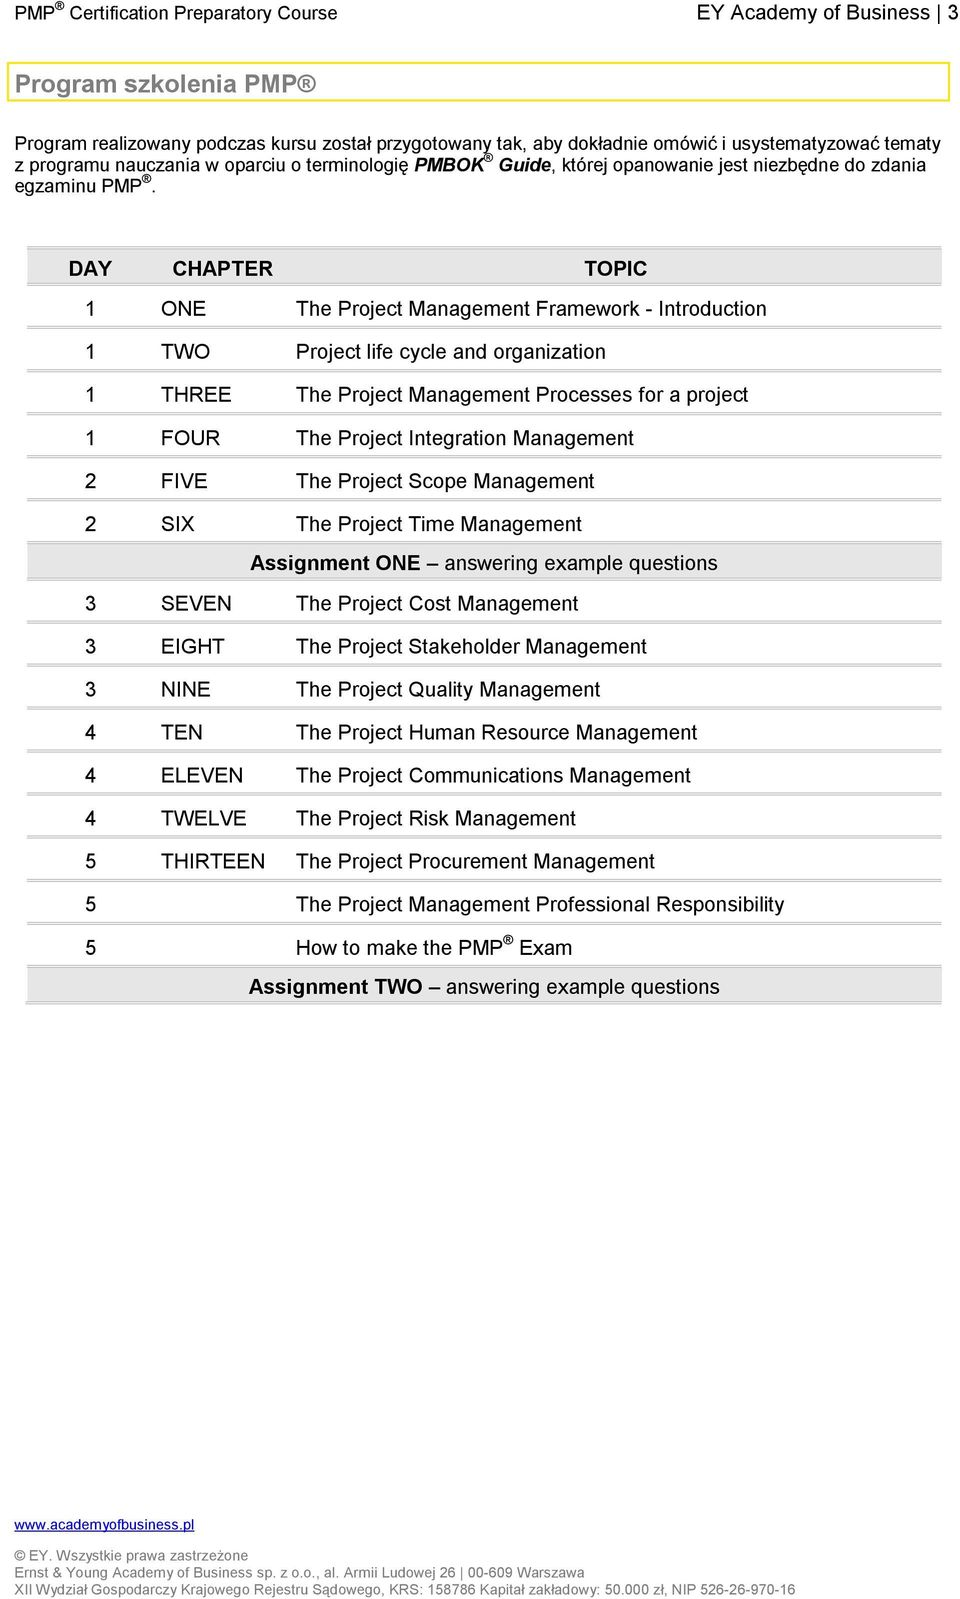 DAY CHAPTER TOPIC 1 ONE The Project Management Framework - Introduction 1 TWO Project life cycle and organization 1 THREE The Project Management Processes for a project 1 FOUR The Project Integration